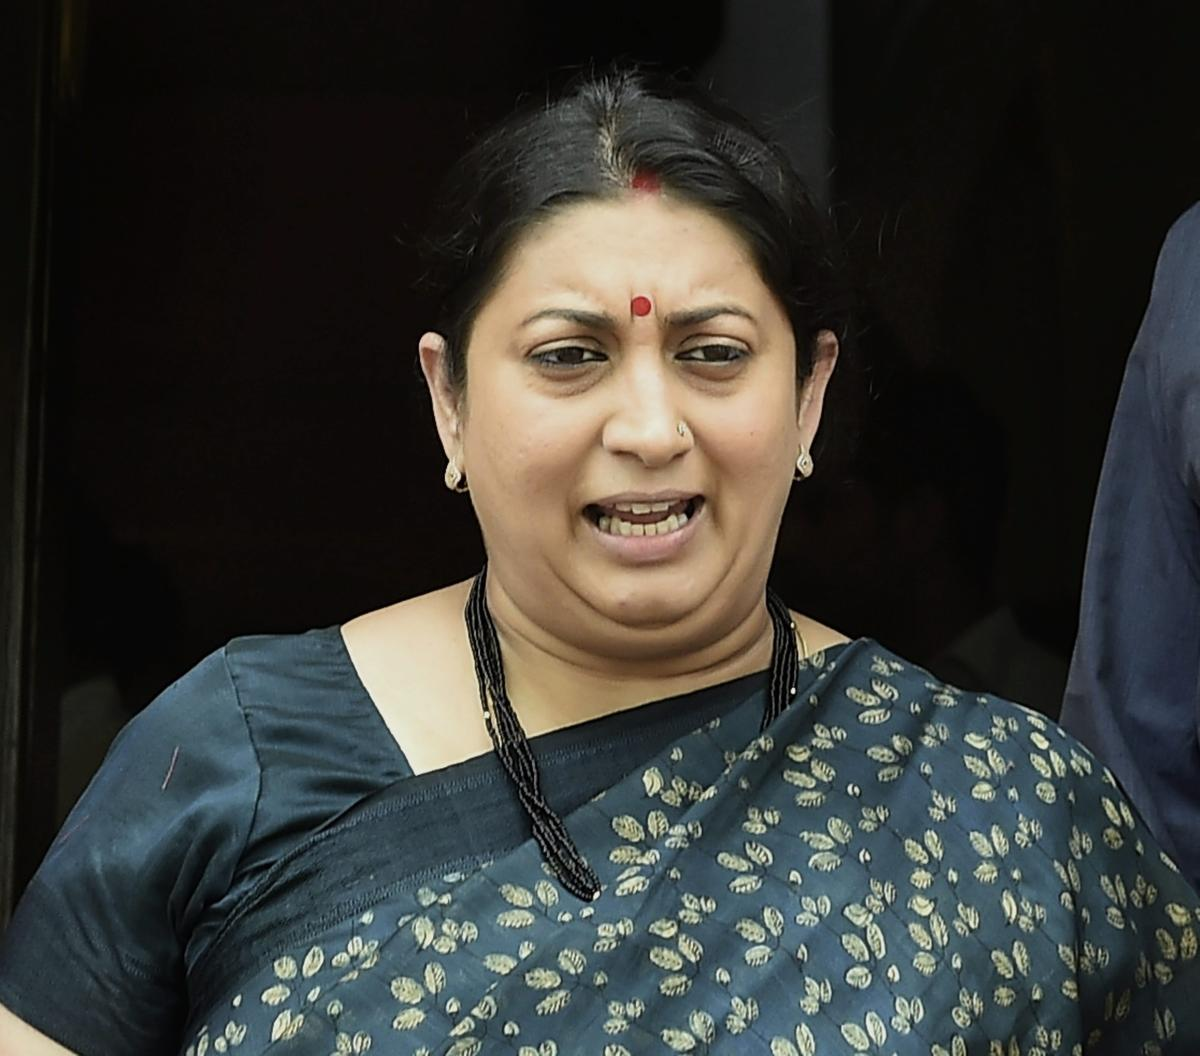 Unnao rape case: Stern action will be taken against those guilty, says Smriti Irani